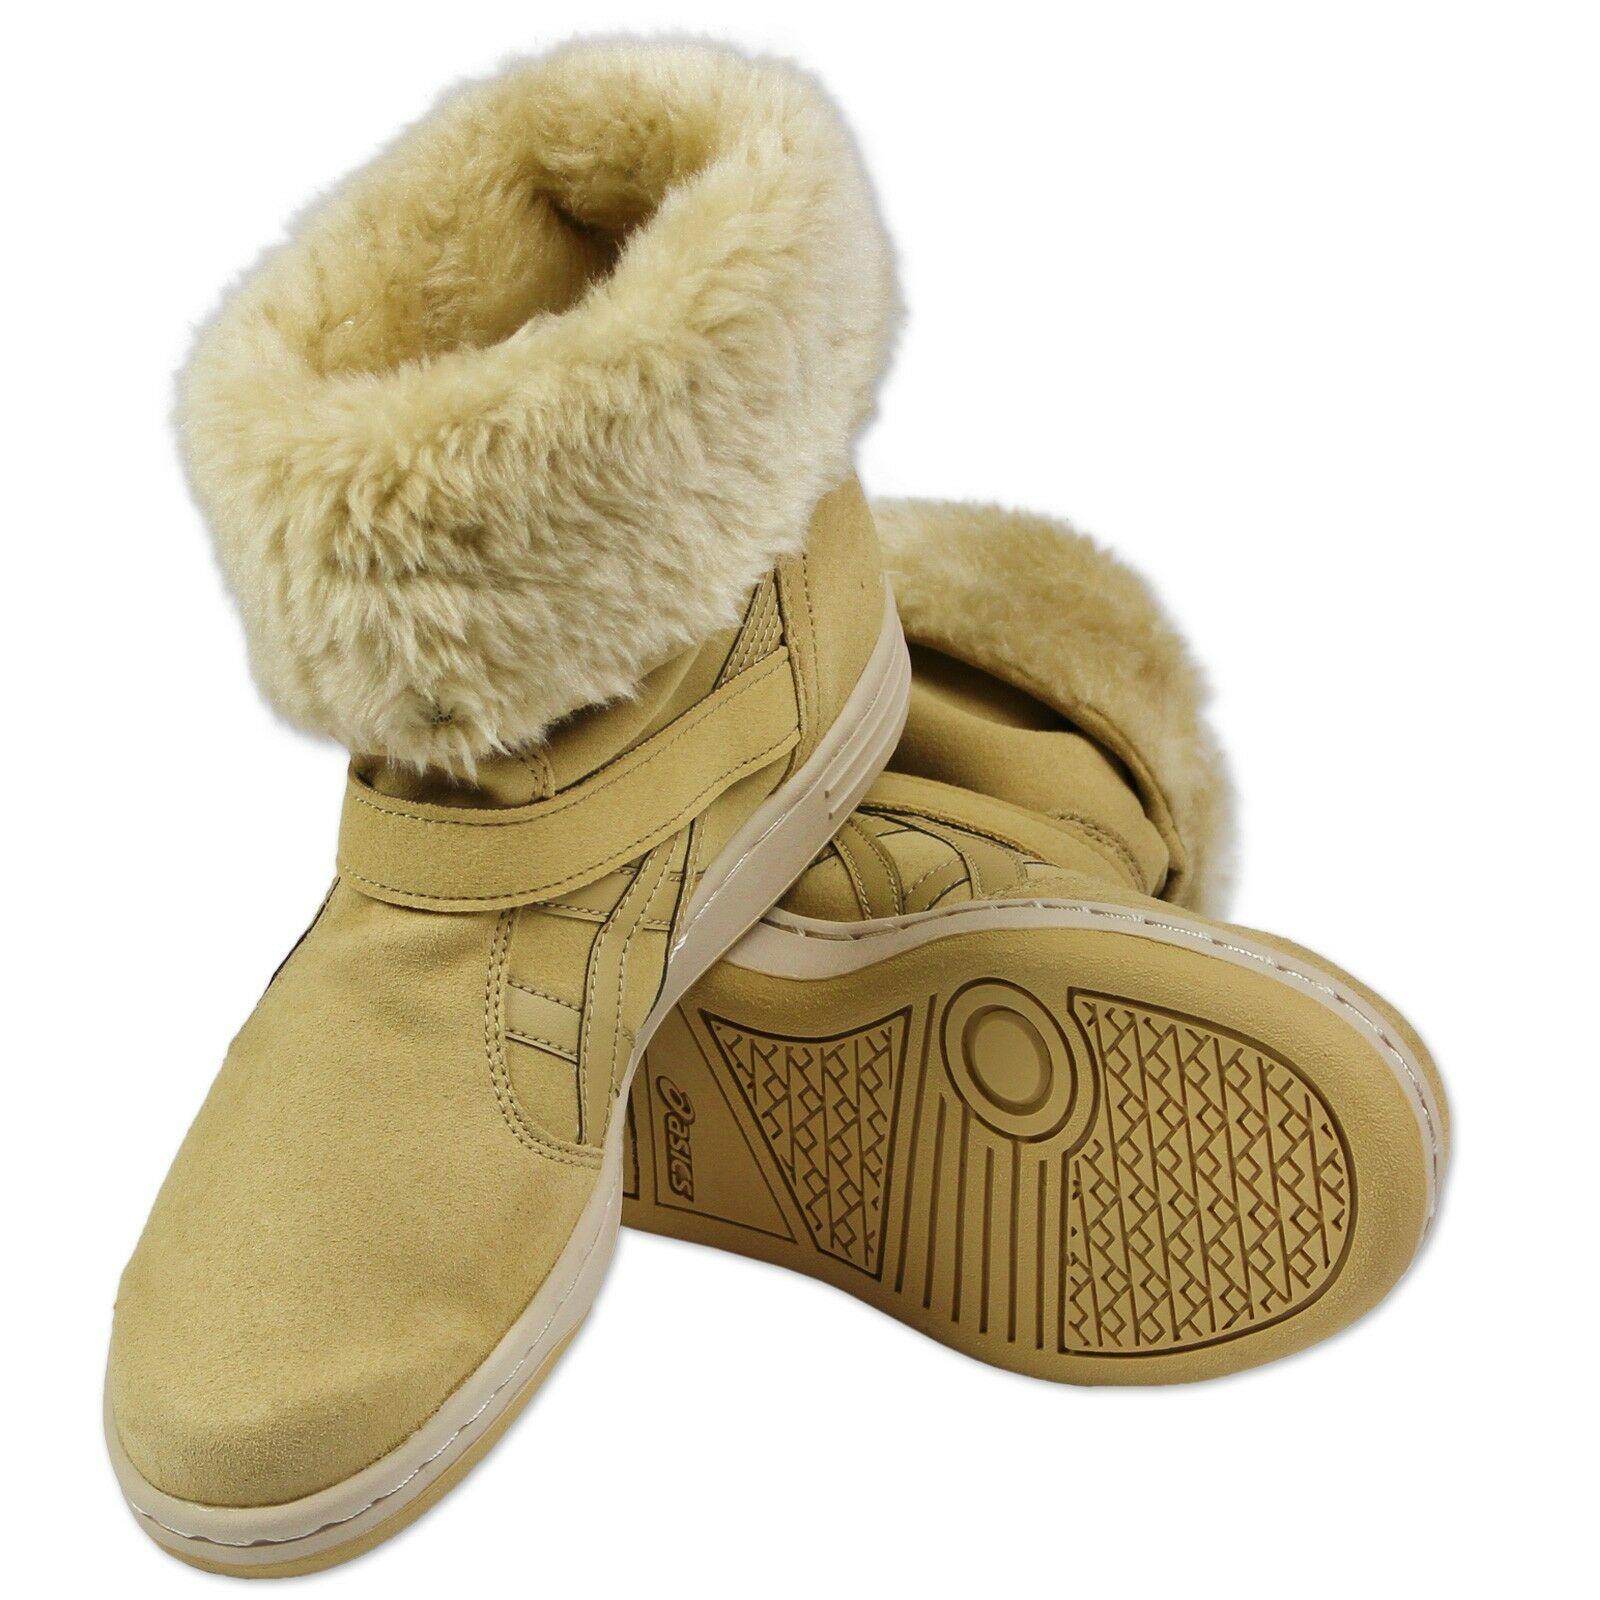 Asics Onitsuka Tiger meriki Winter Boots Ankle Boots Mexico Beige 66 Camel Beige Mexico ea00d6